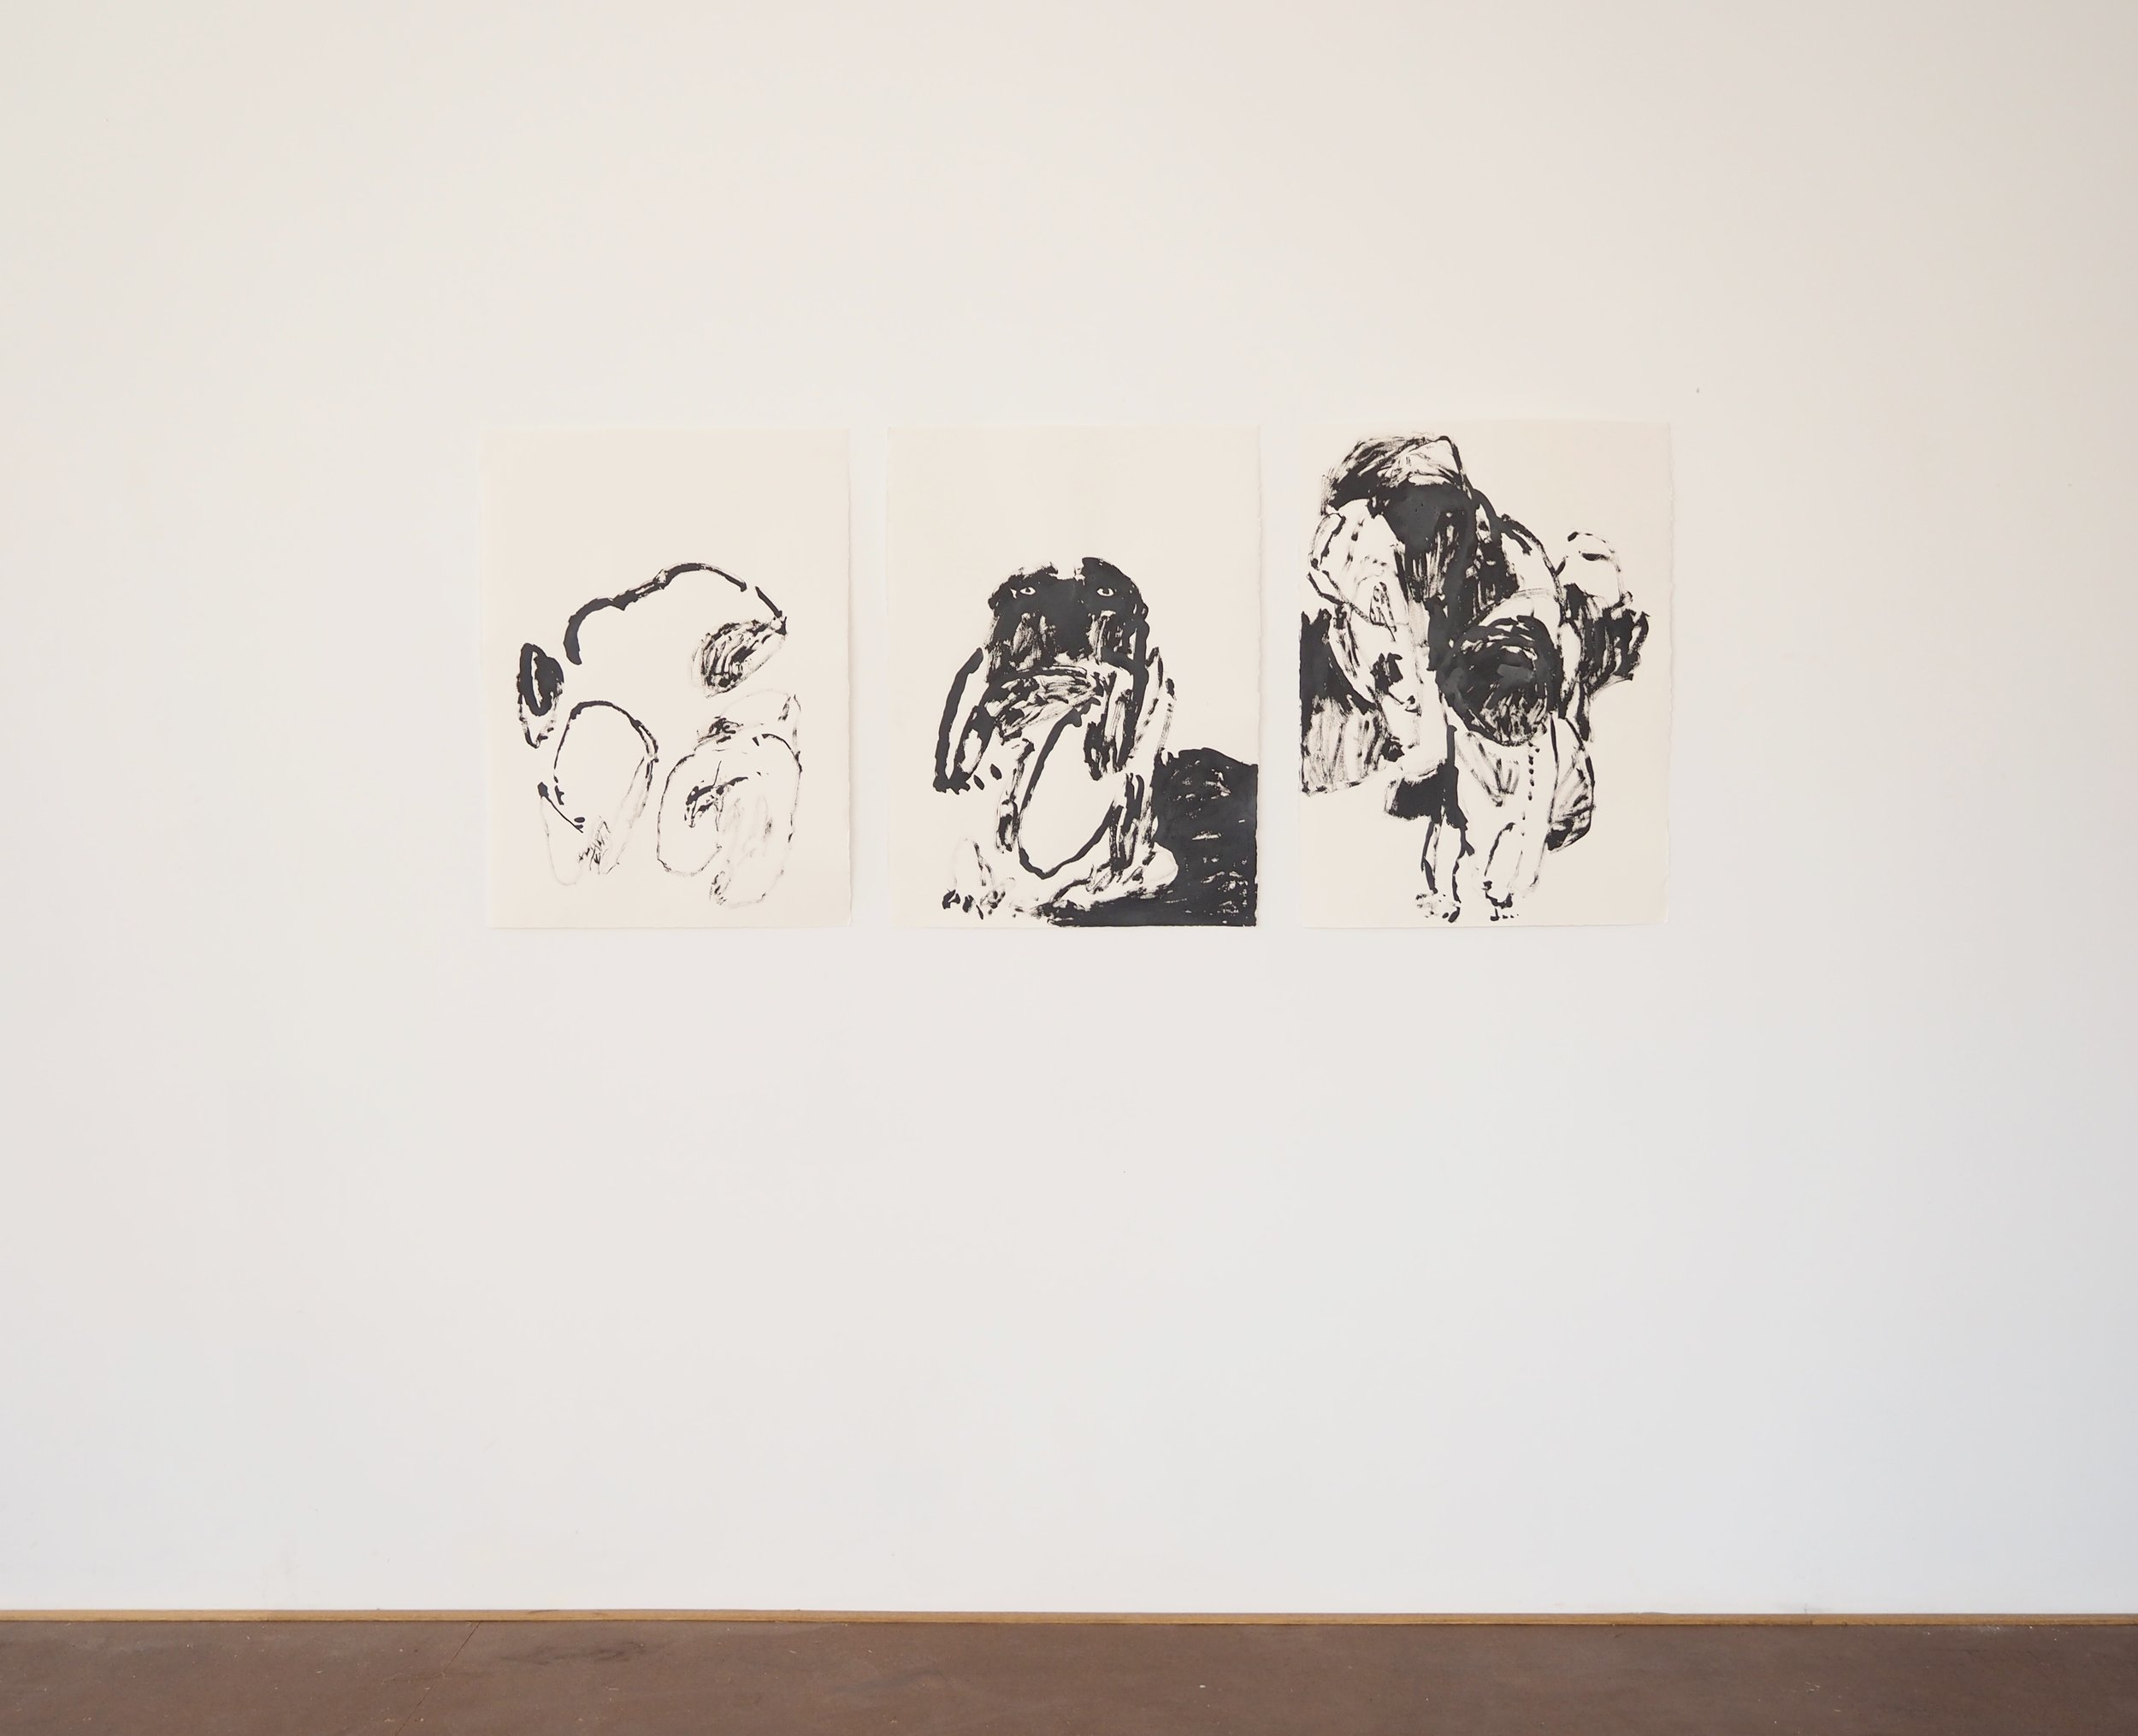 2 hours after Bedtime , 2017 Ink on paper 3 works, 76 x 56 cm each